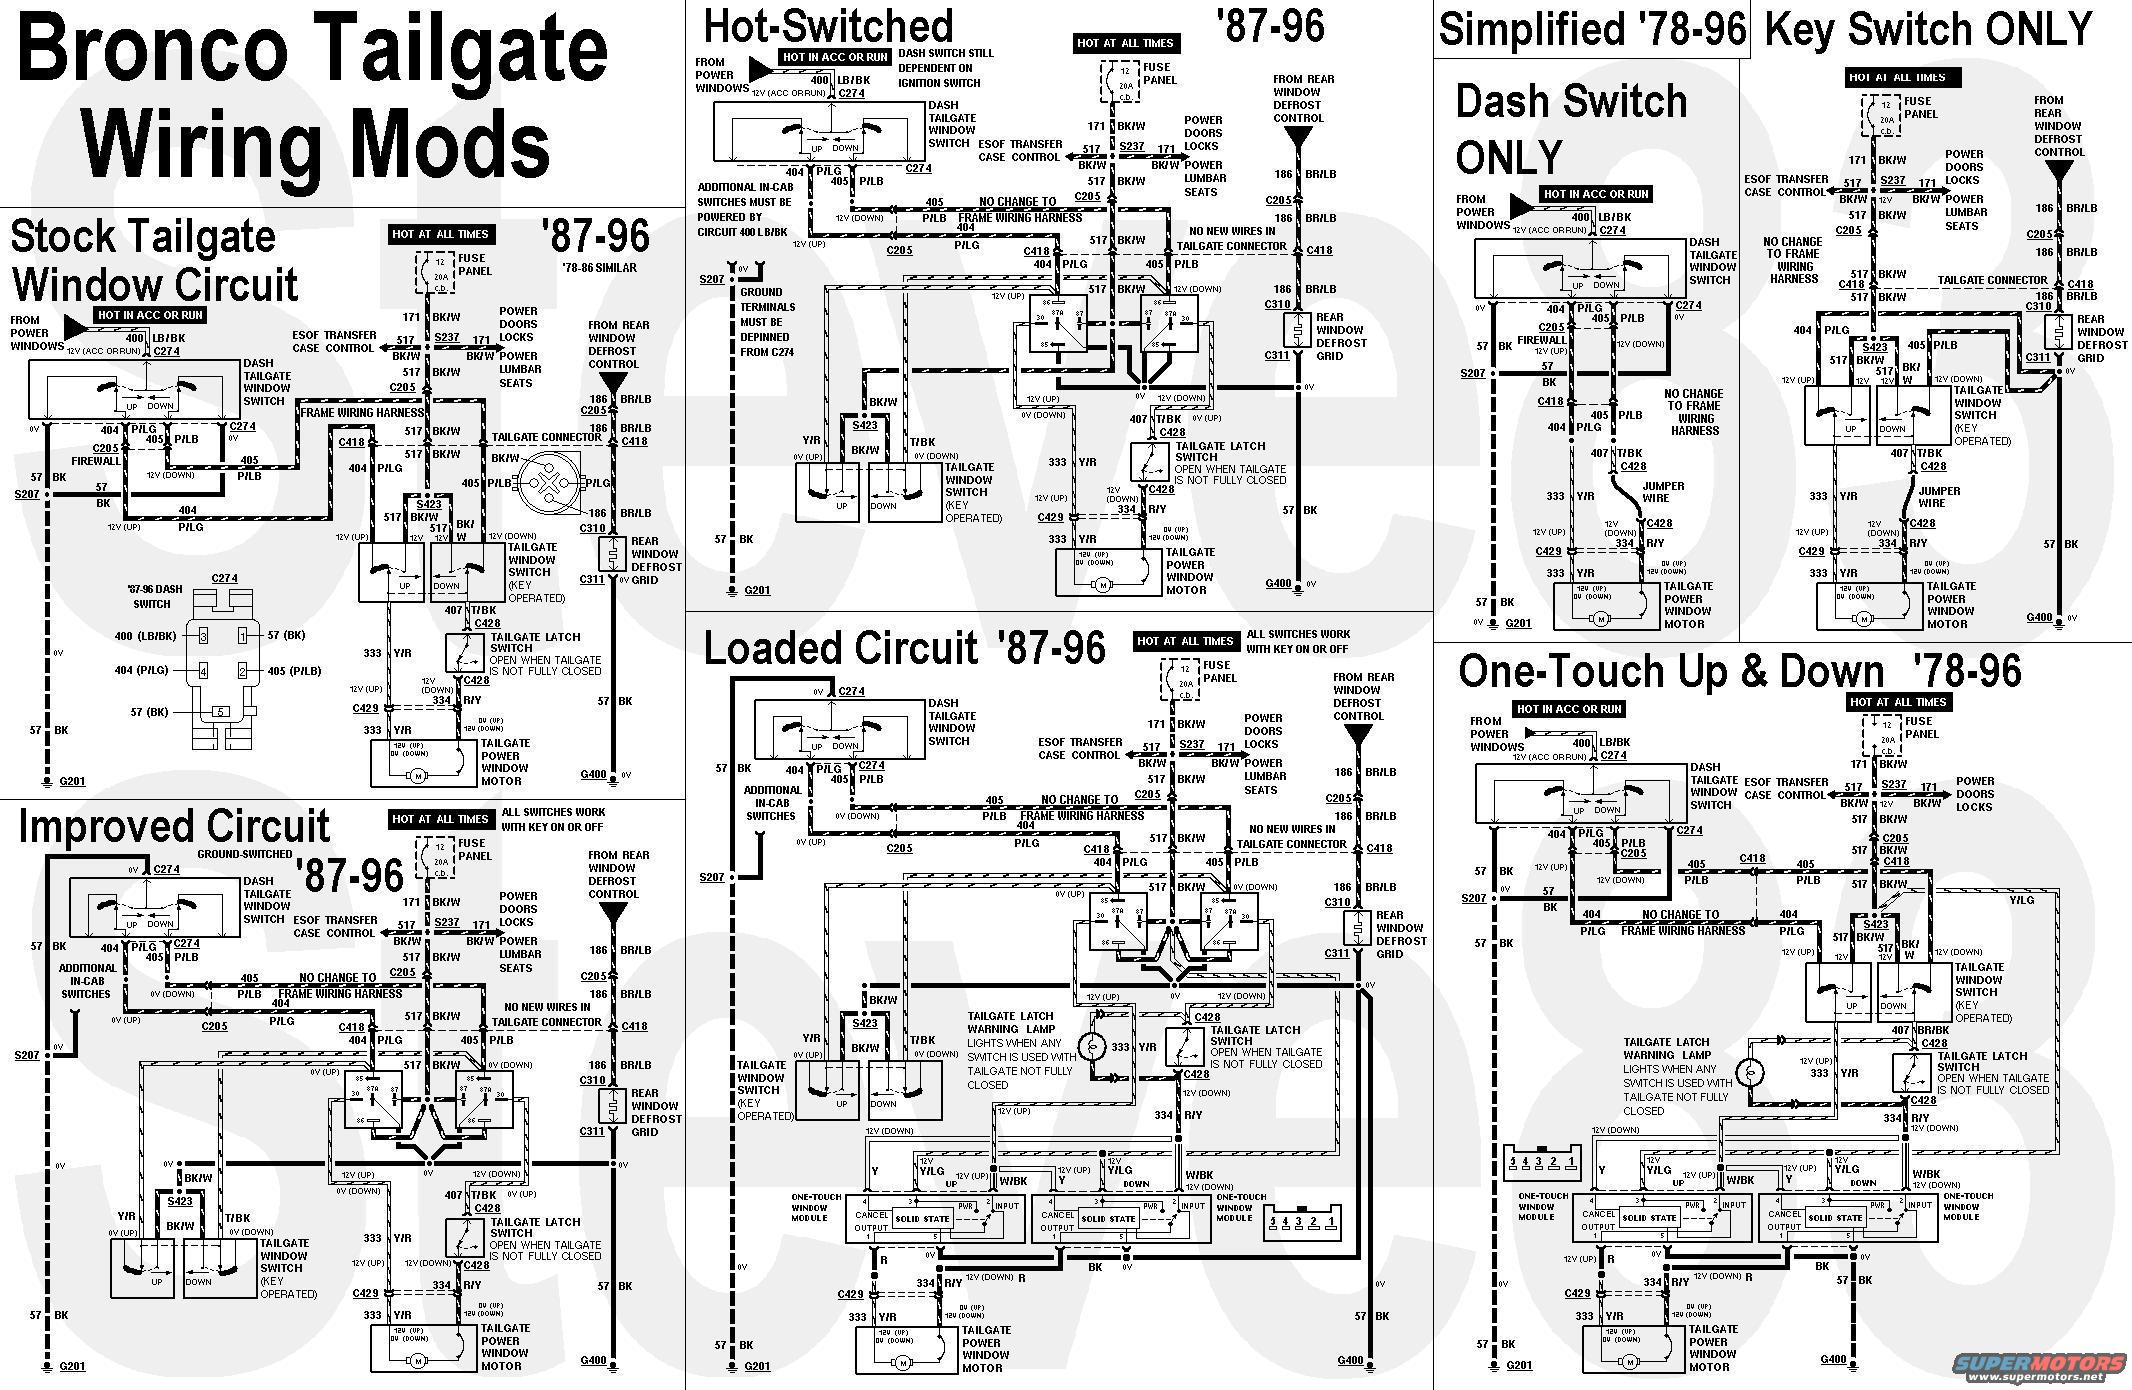 96 Bronco Tailgate Wiring Diagram 33 Images Ecm Tgcircuitmods Window Lift Key Switch Bypass Ford Truck Enthusiasts 1996